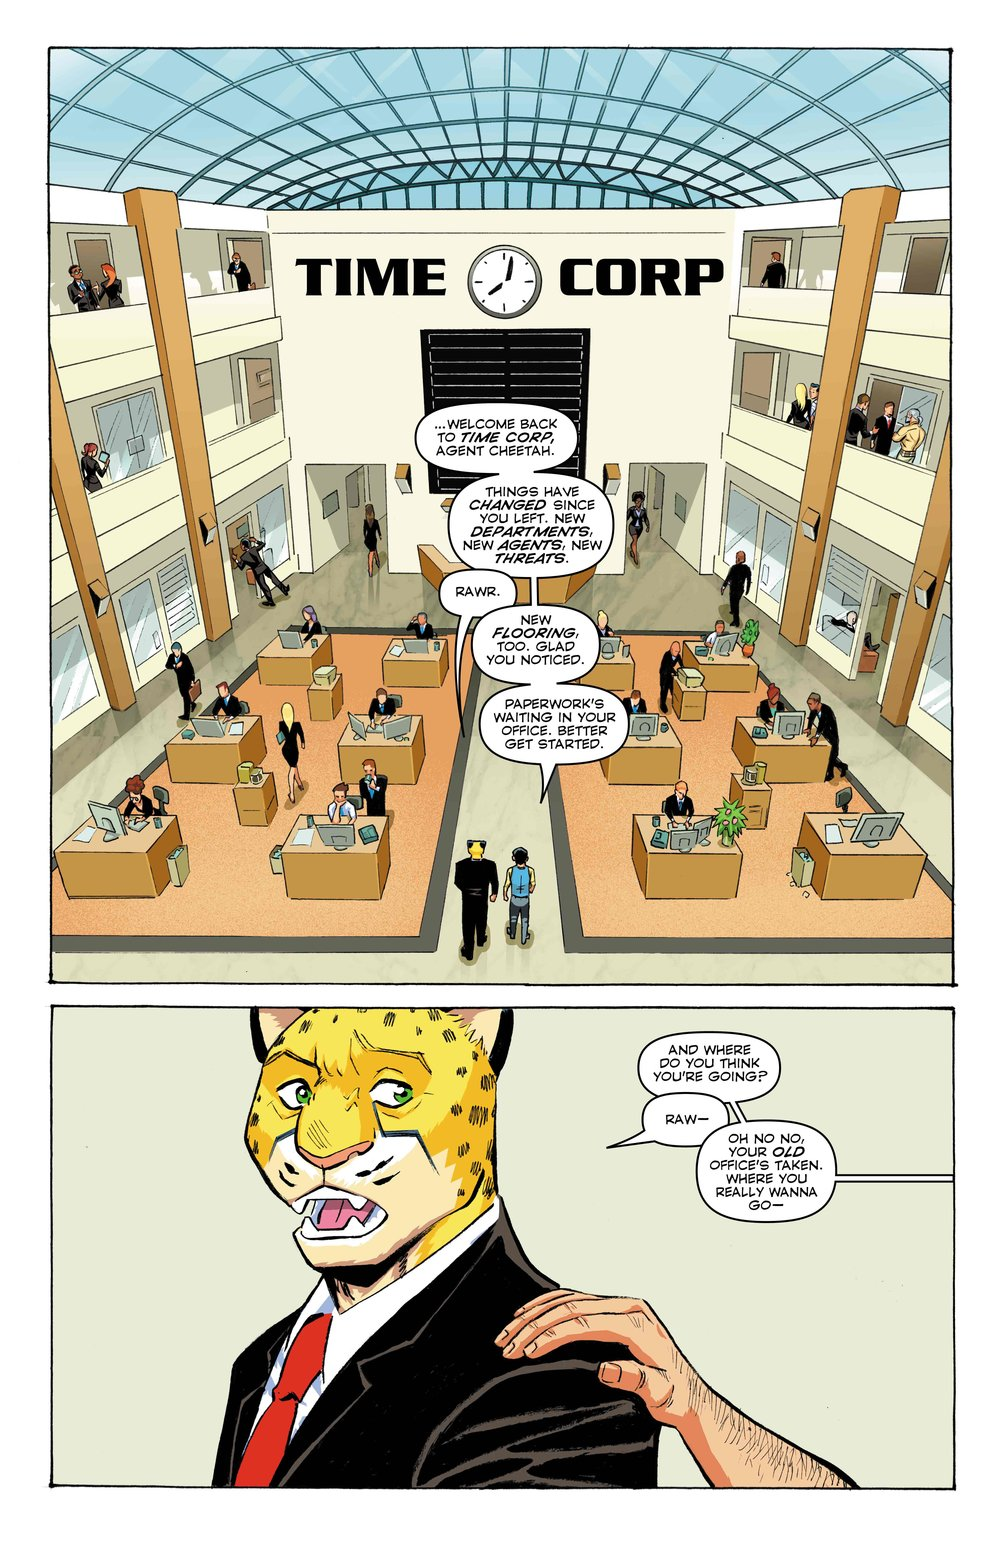 Time Cheetah - Ford's Fortune Part 1 Page 03